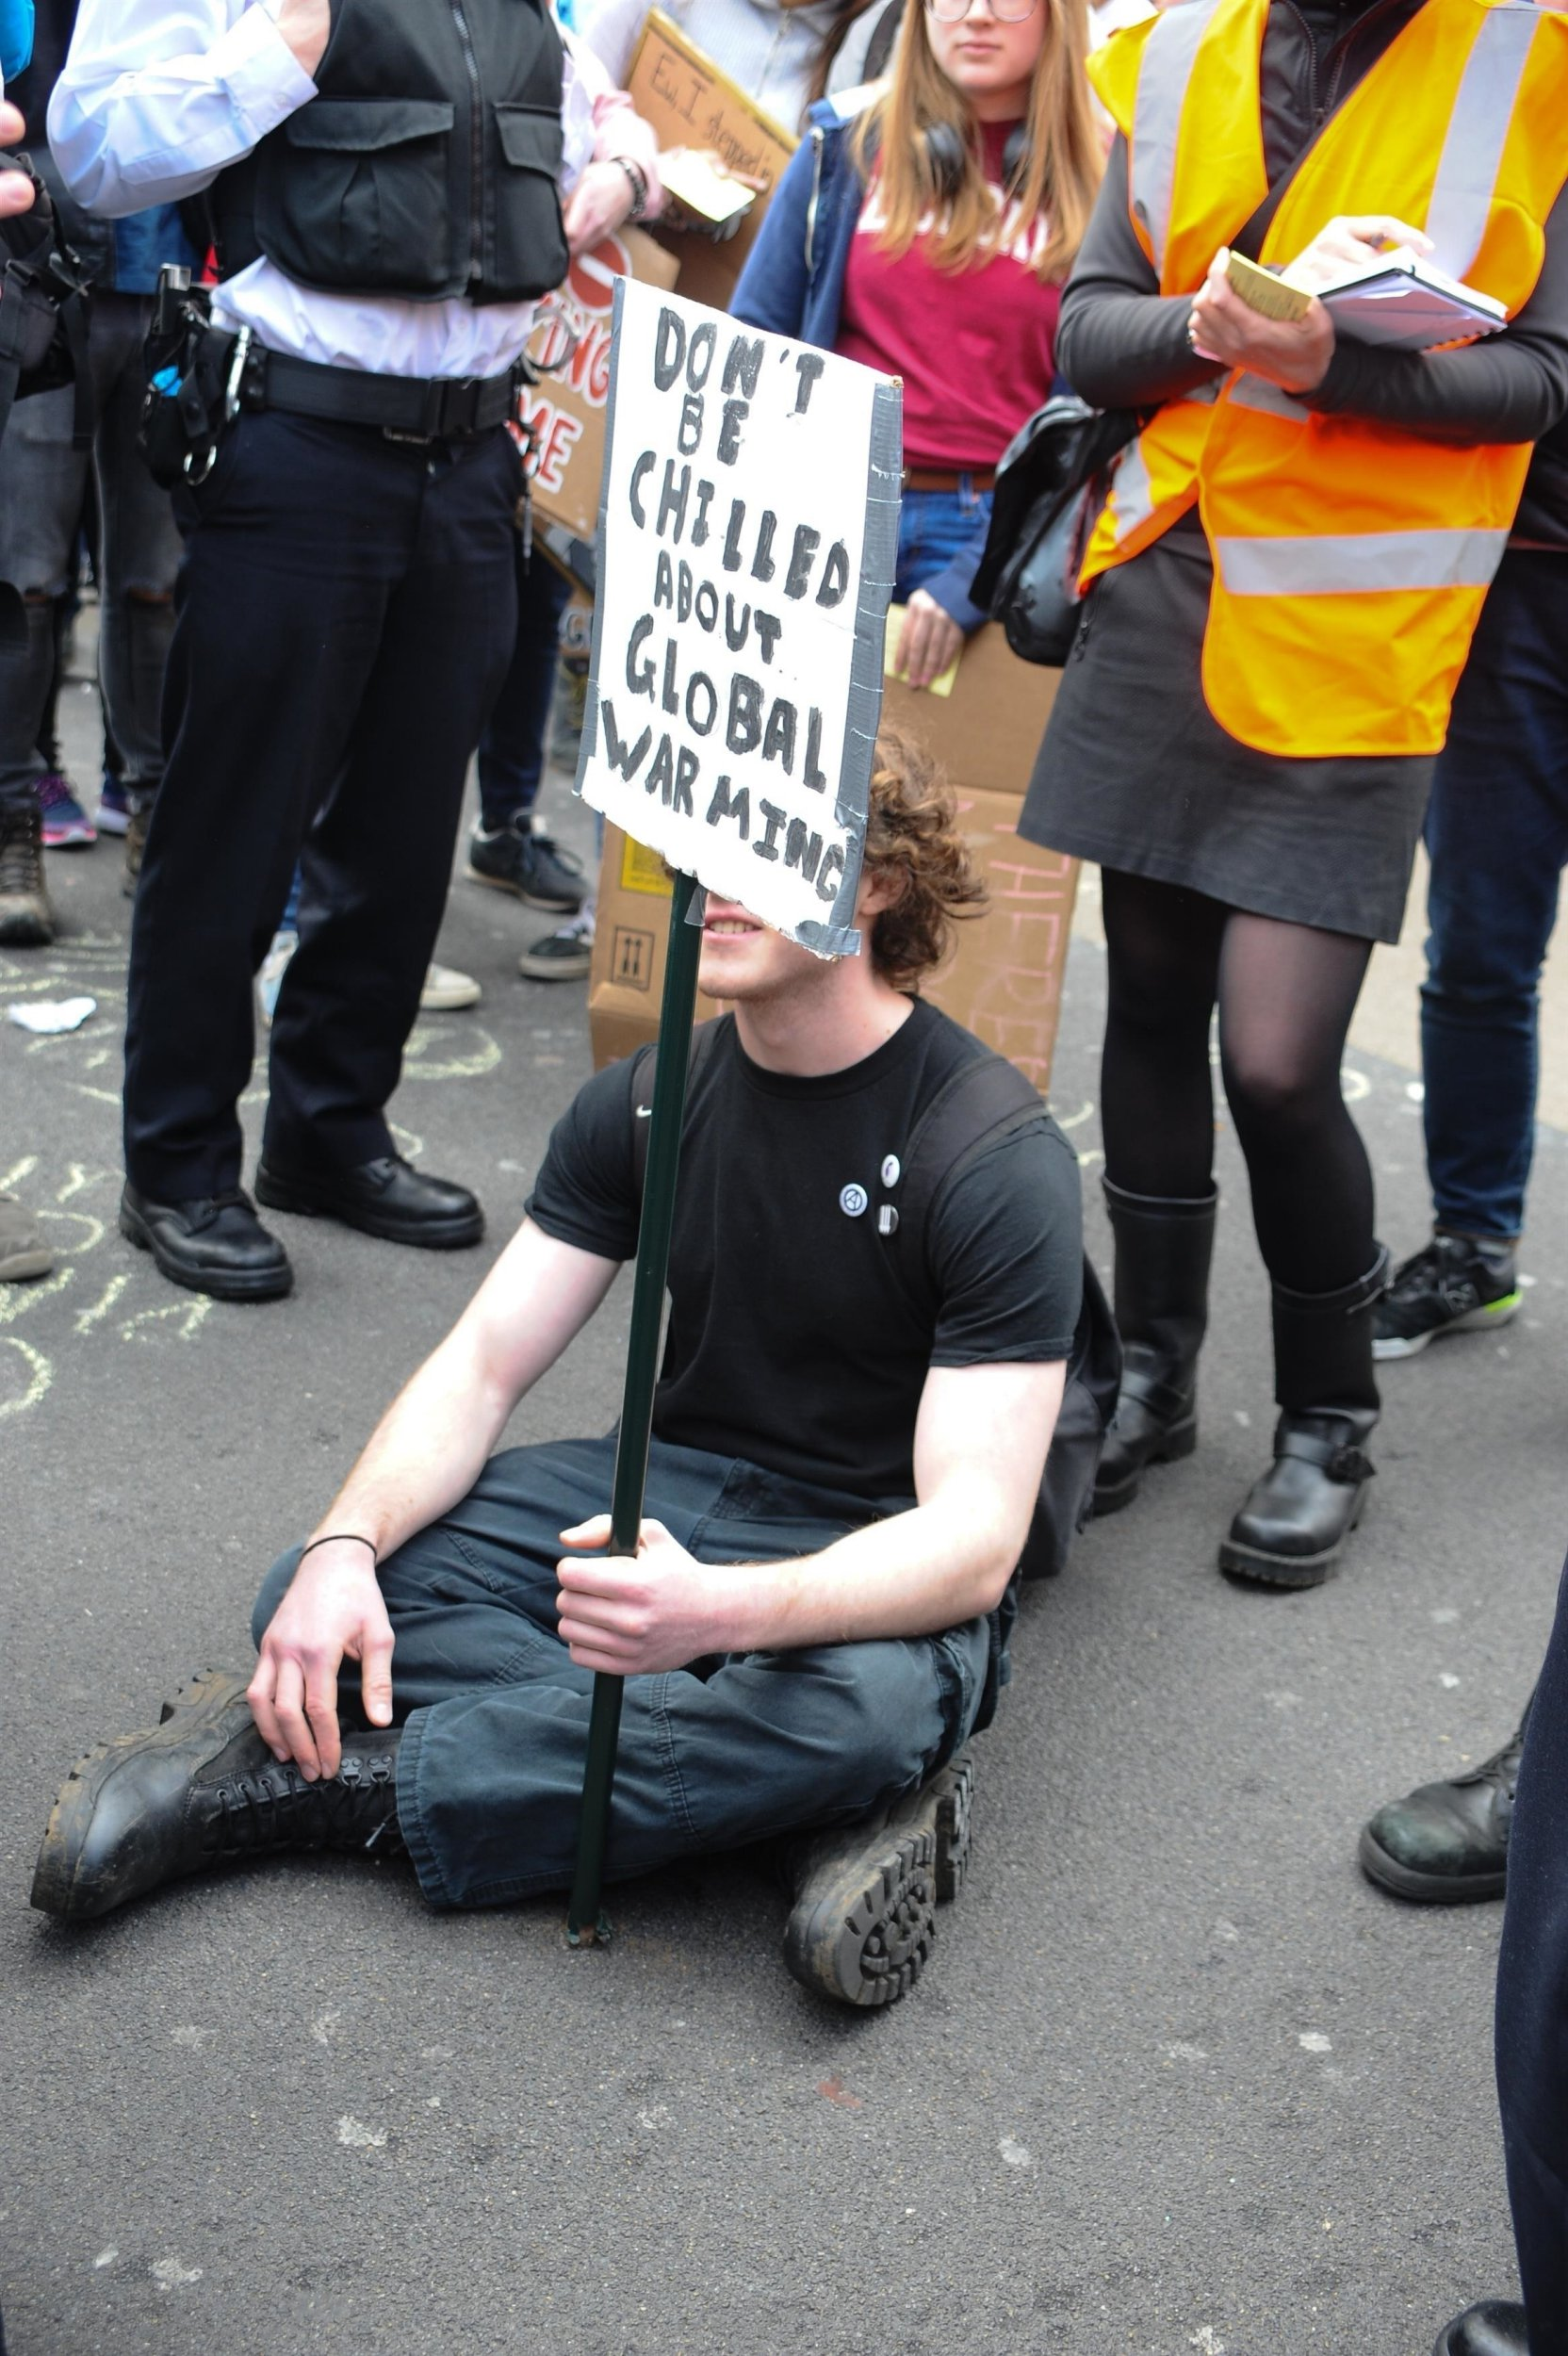 BGUK_1547664 - London, UNITED KINGDOM - Climate Change Protest, protesters block one side of Oxford Street by Oxford Circus tude station , Police arrive and persuade the Protesters including children to move. Leaving just one Protester who refuses to move and is arrested Pictured: GV, General View BACKGRID UK 12 APRIL 2019 UK: +44 208 344 2007 / uksales@backgrid.com USA: +1 310 798 9111 / usasales@backgrid.com *UK Clients - Pictures Containing Children Please Pixelate Face Prior To Publication*